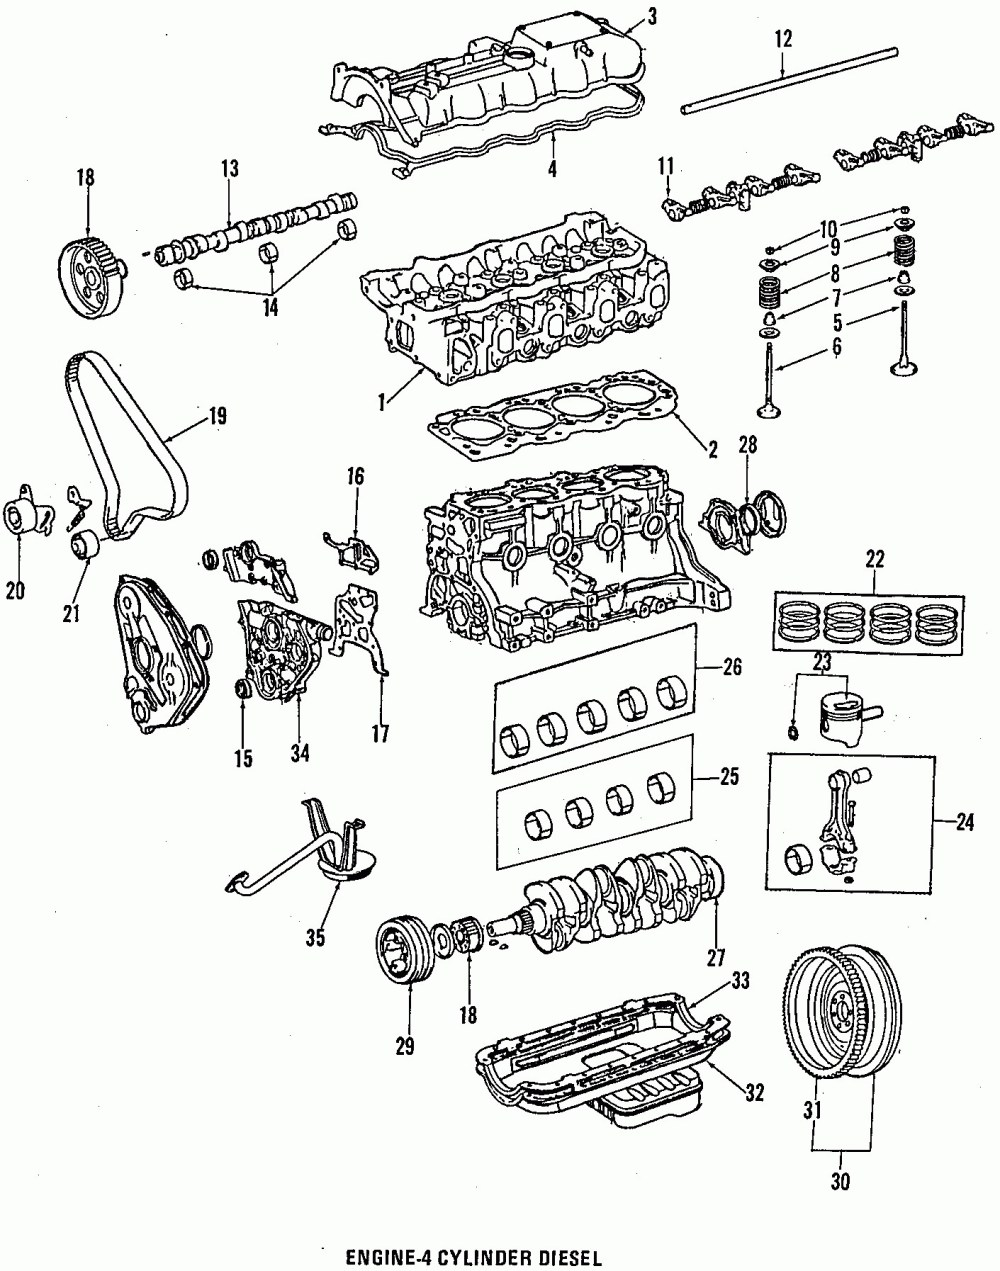 medium resolution of 2005 toyota tacoma engine diagram 2005 toyota corolla ce parts diagram toyota wiring diagrams of 2005